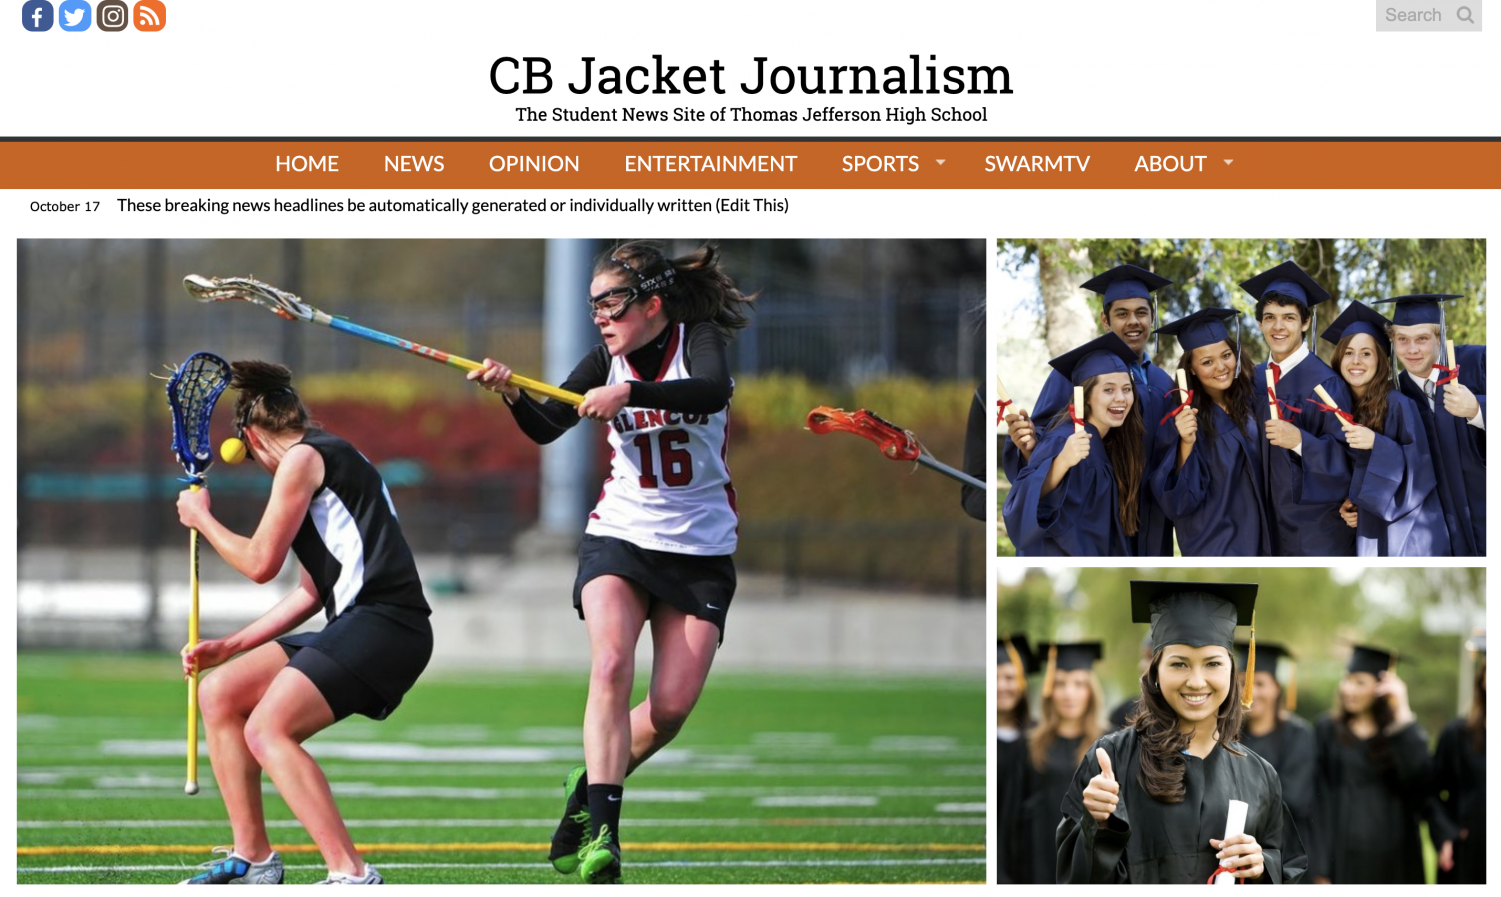 The home page has a new look with placeholder stories and visuals until more content has been created.